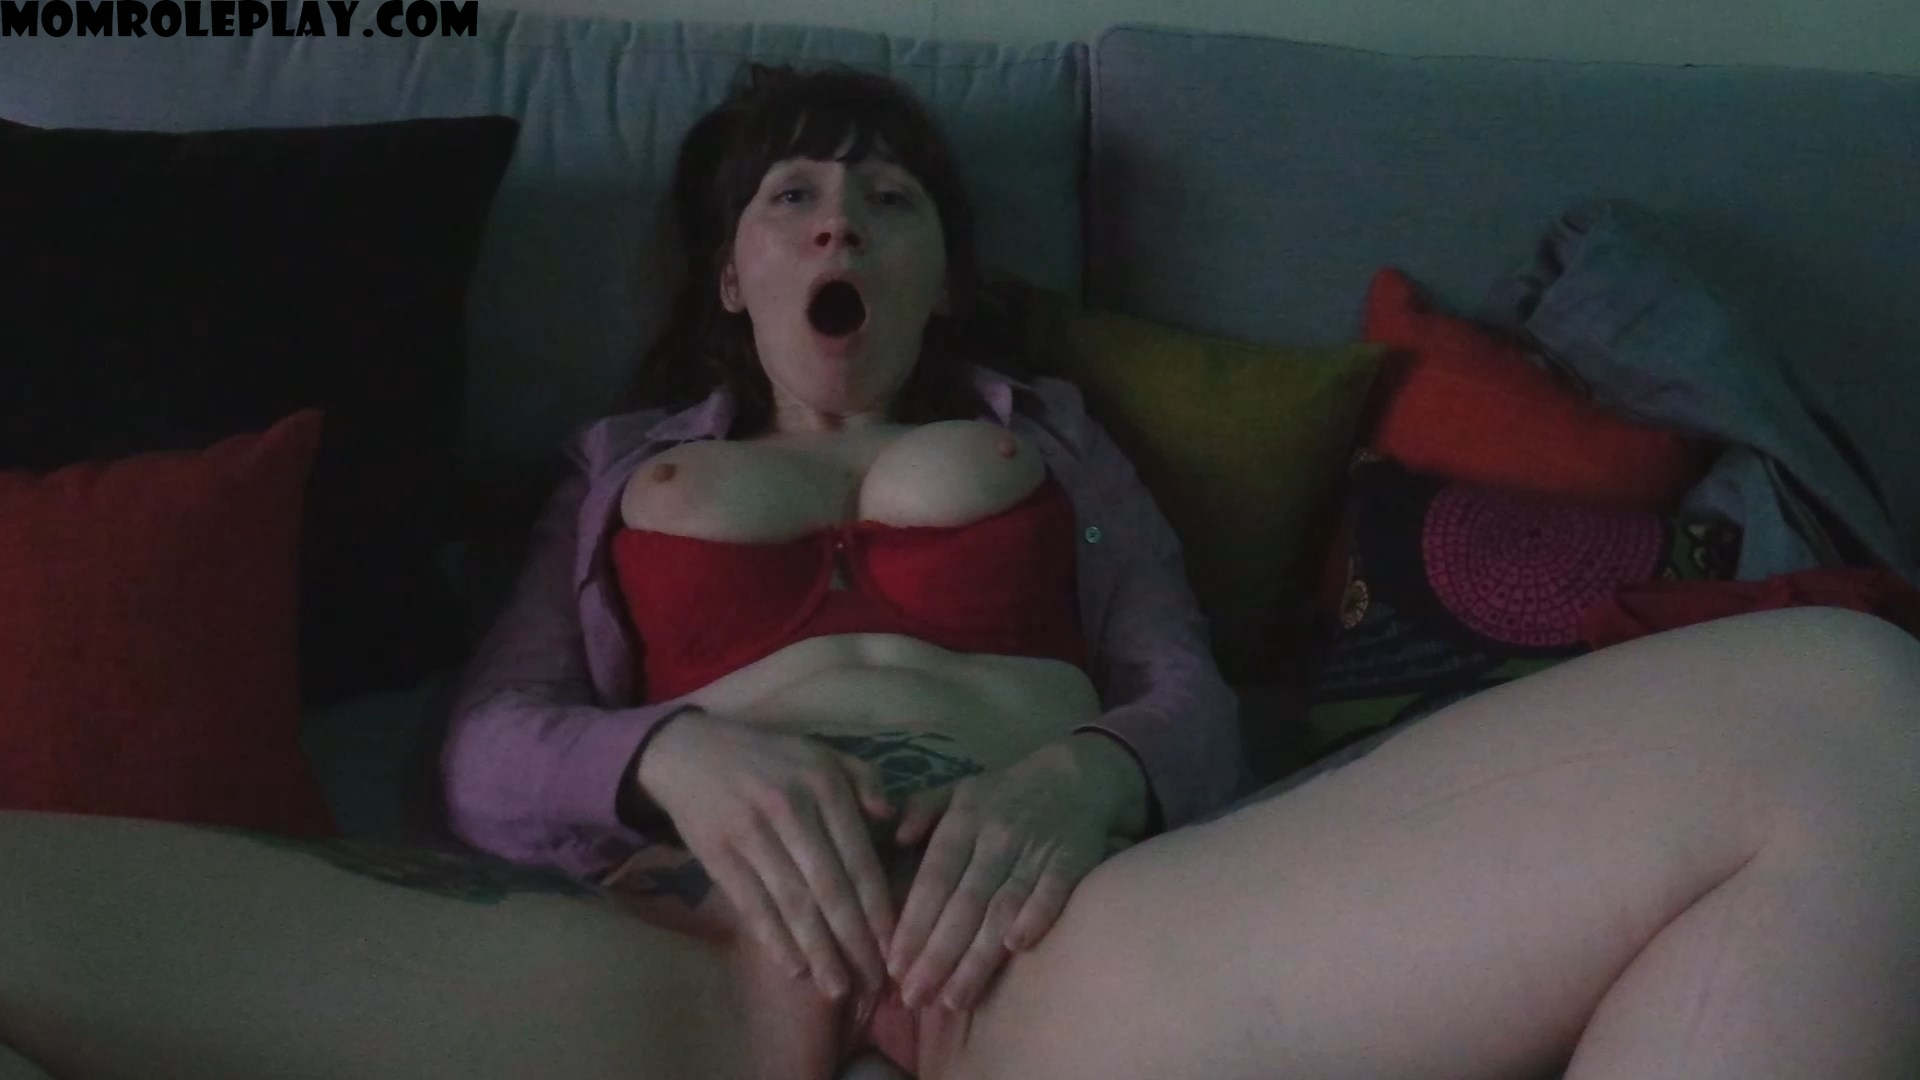 Bettie Bondage - Mom Helps You Get the Part